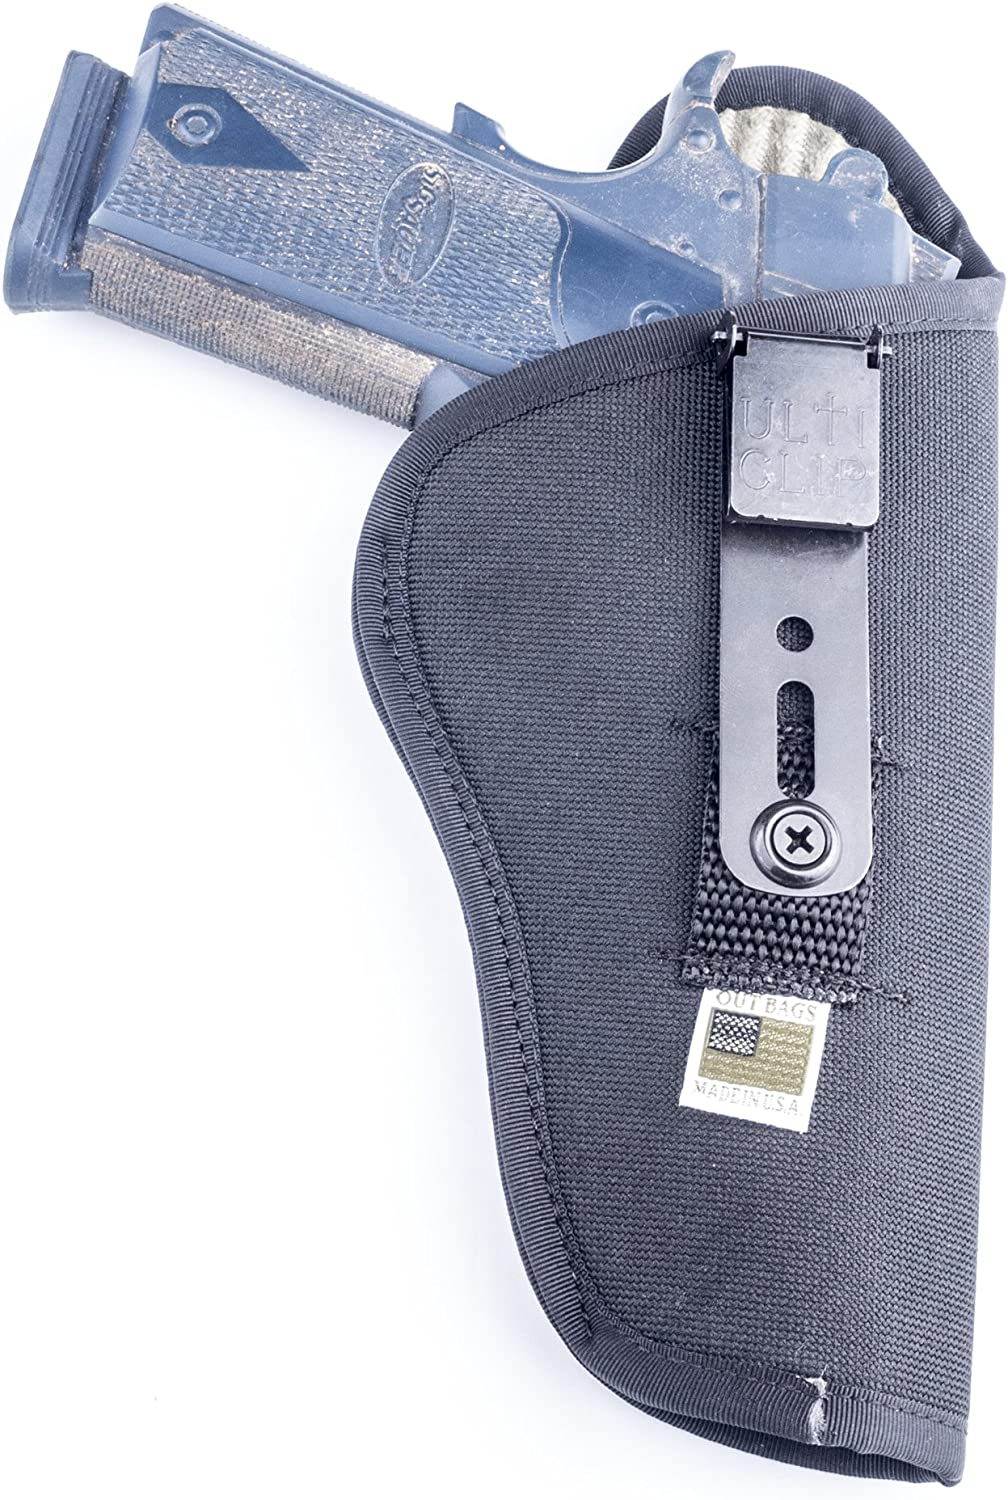 MADE IN USA Browning Hi PowerIWB Conceal Carry CCW Holster w// Sweat Guard